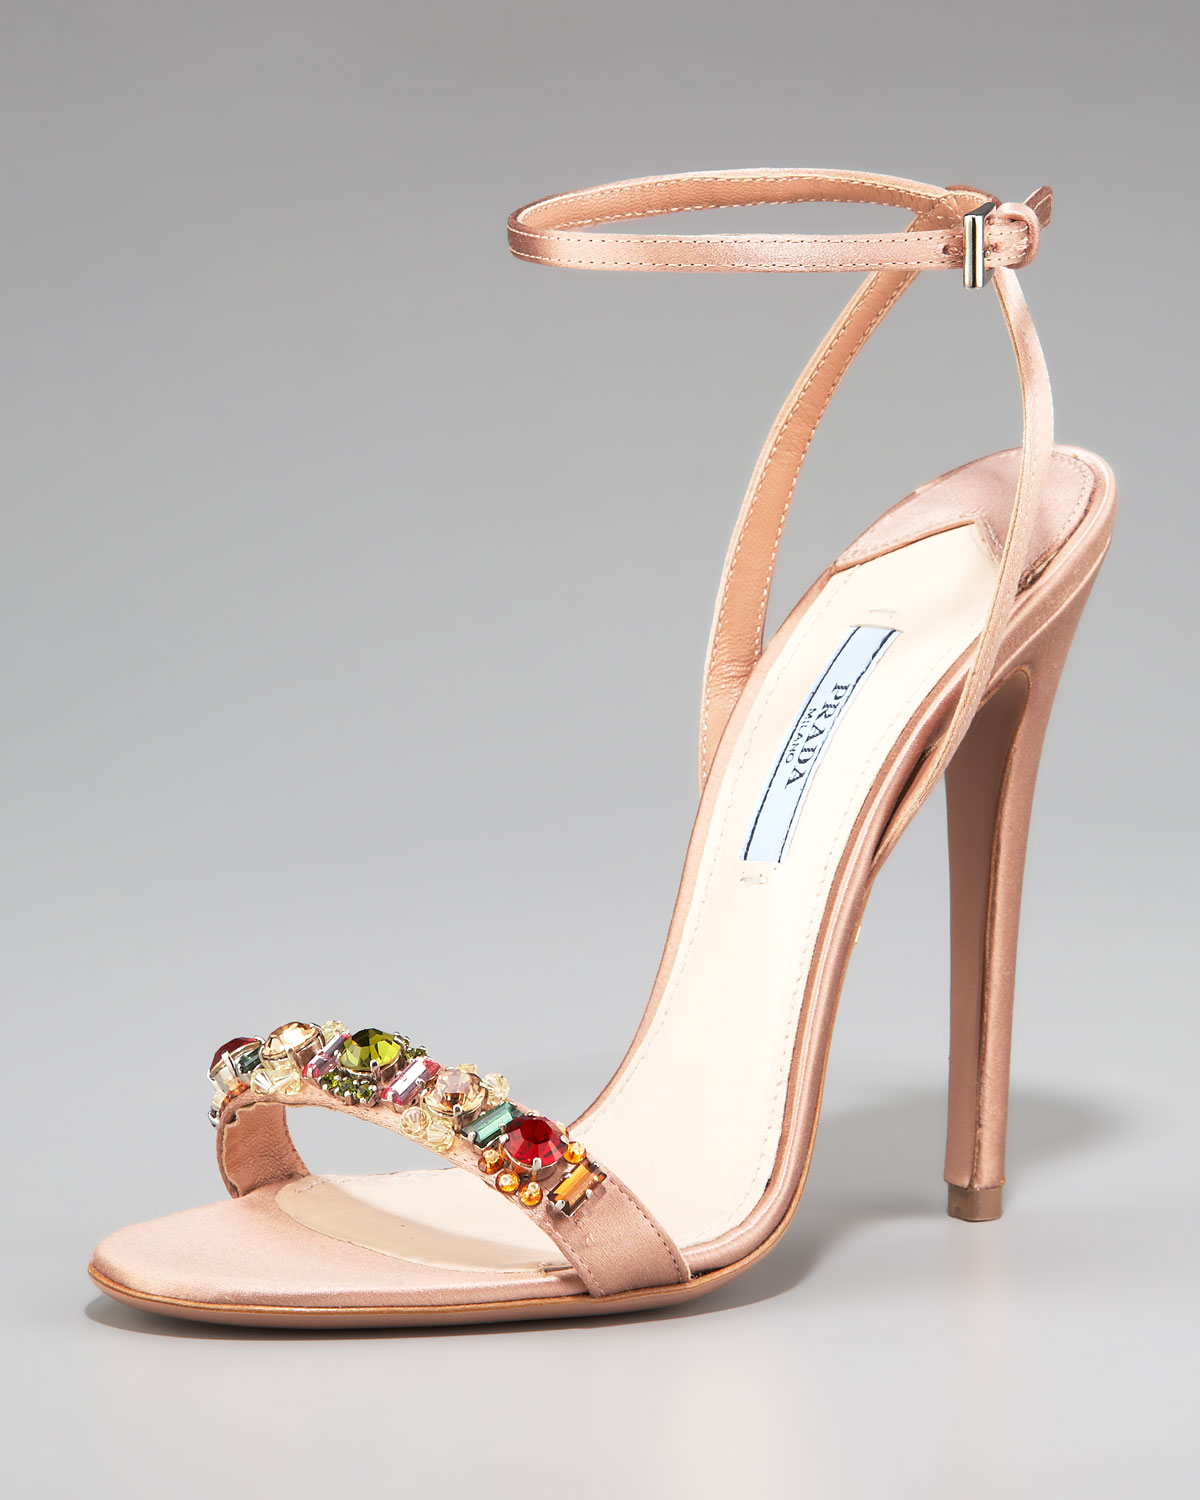 9c66c7e47 Prada Silk Jeweled Ankle-strap Sandal in Natural - Lyst